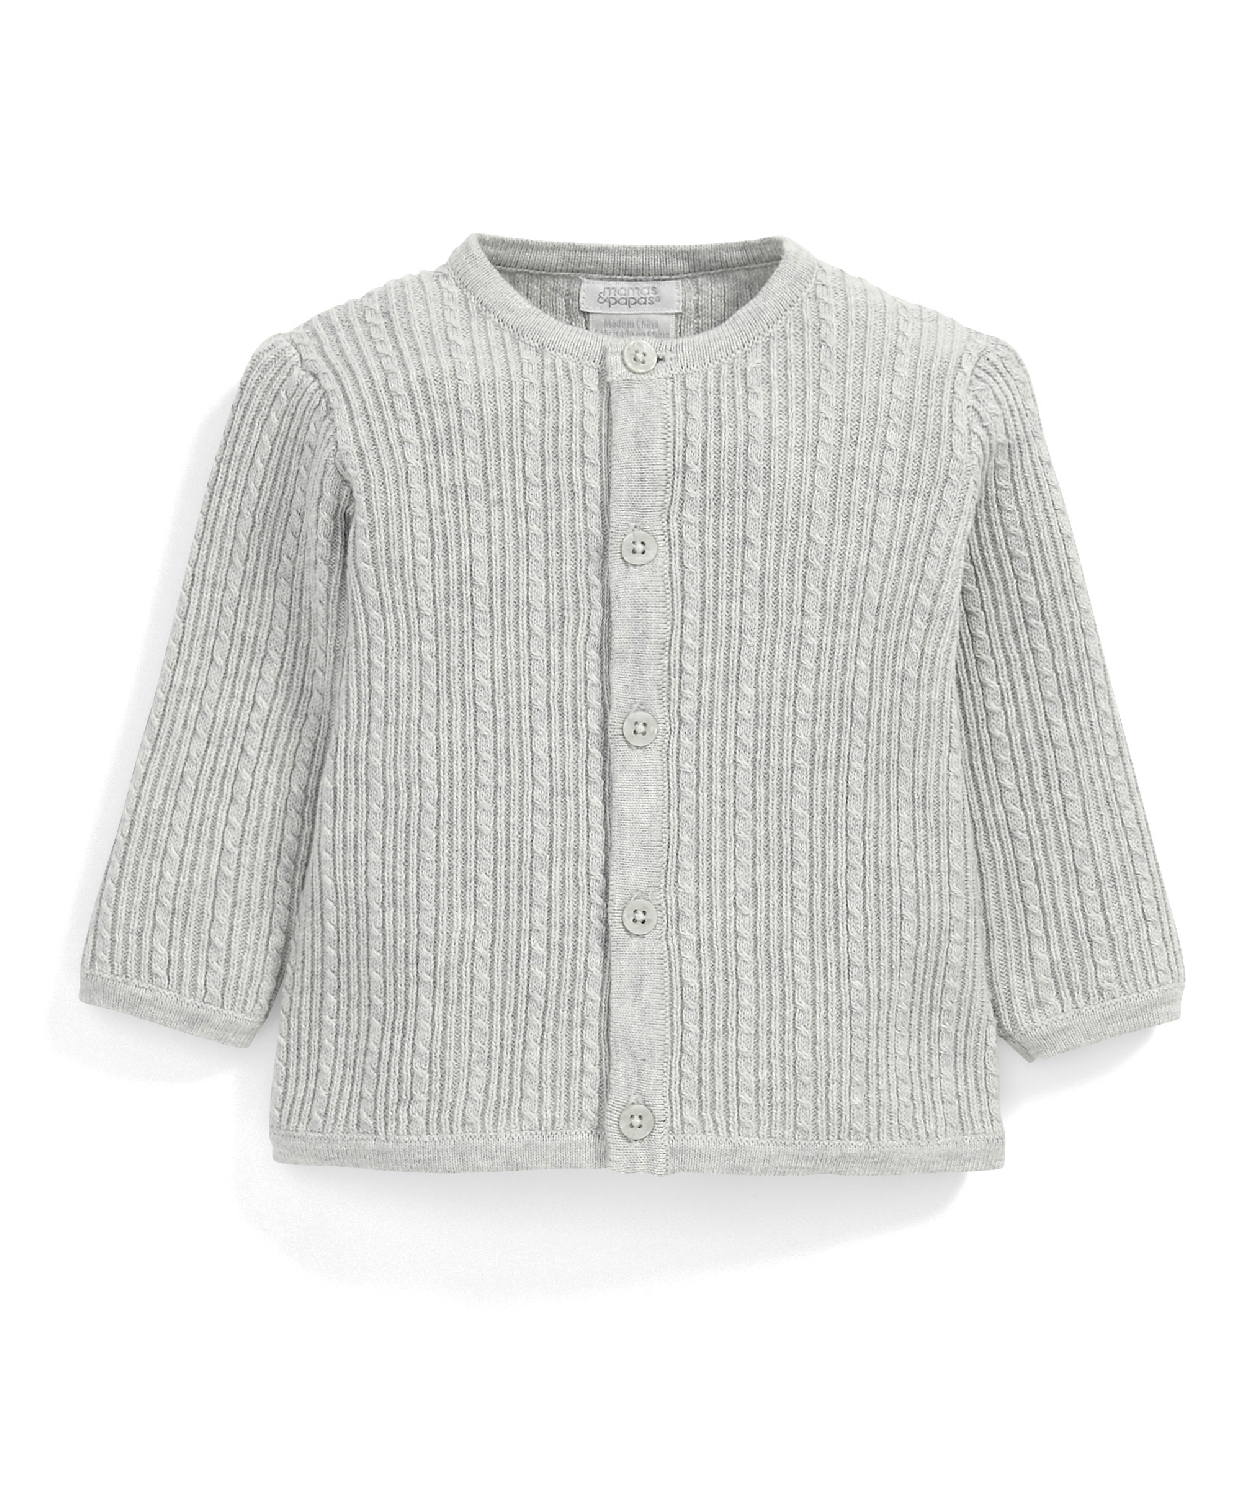 s738x34-cable-knitted-cardigan-